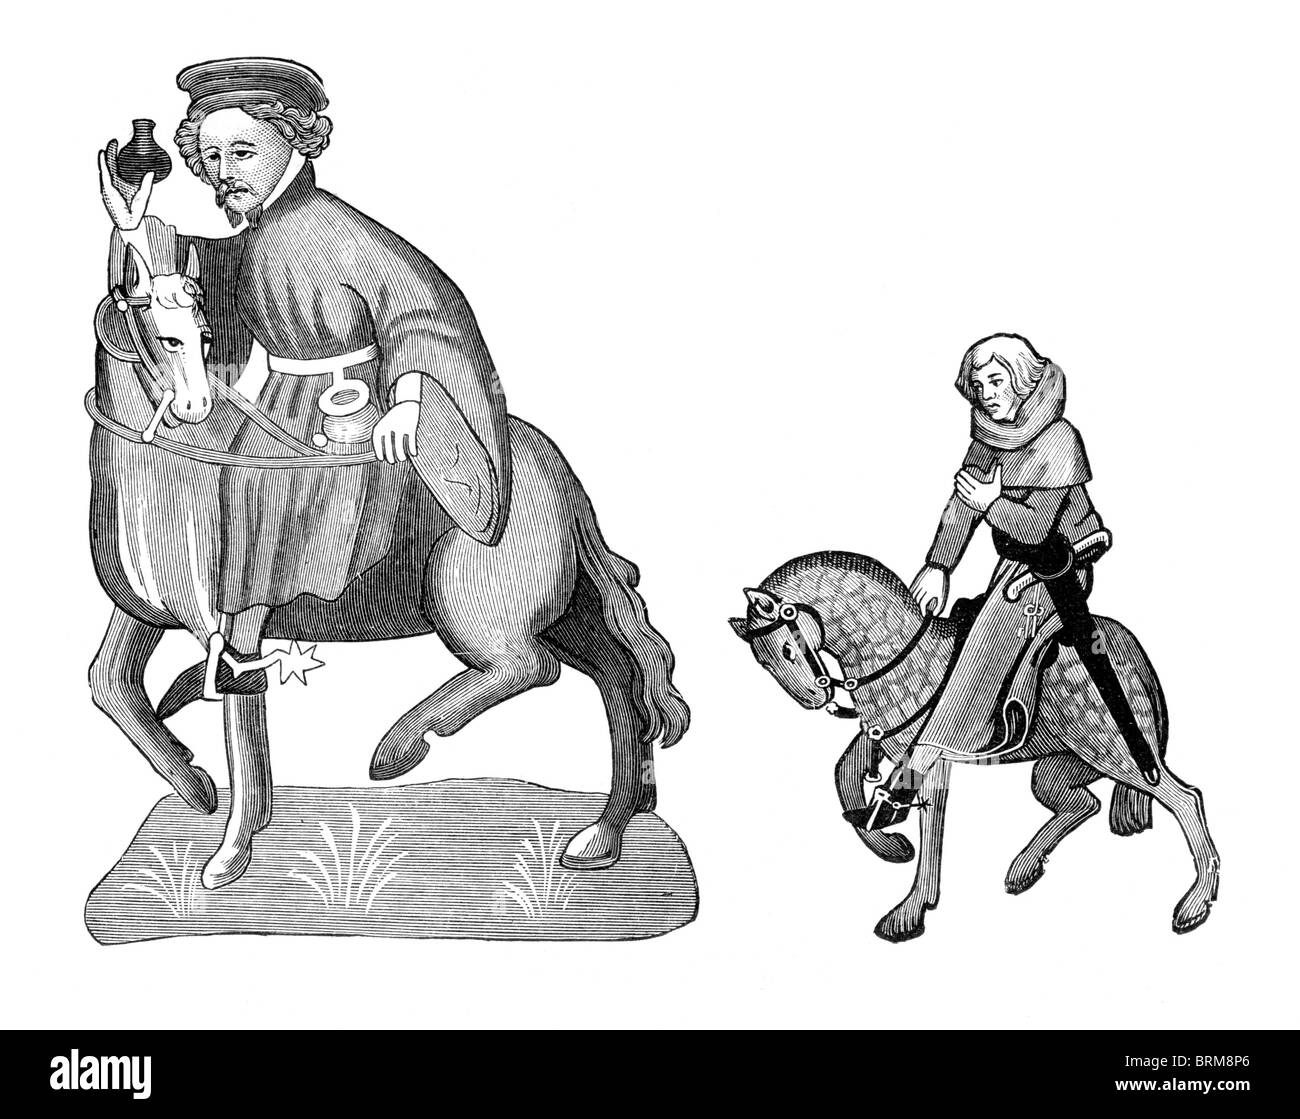 Black and White Illustration; Manciple and Reeve, from the Ellesmere Manuscript of the Canterbury Tales, - Stock Image